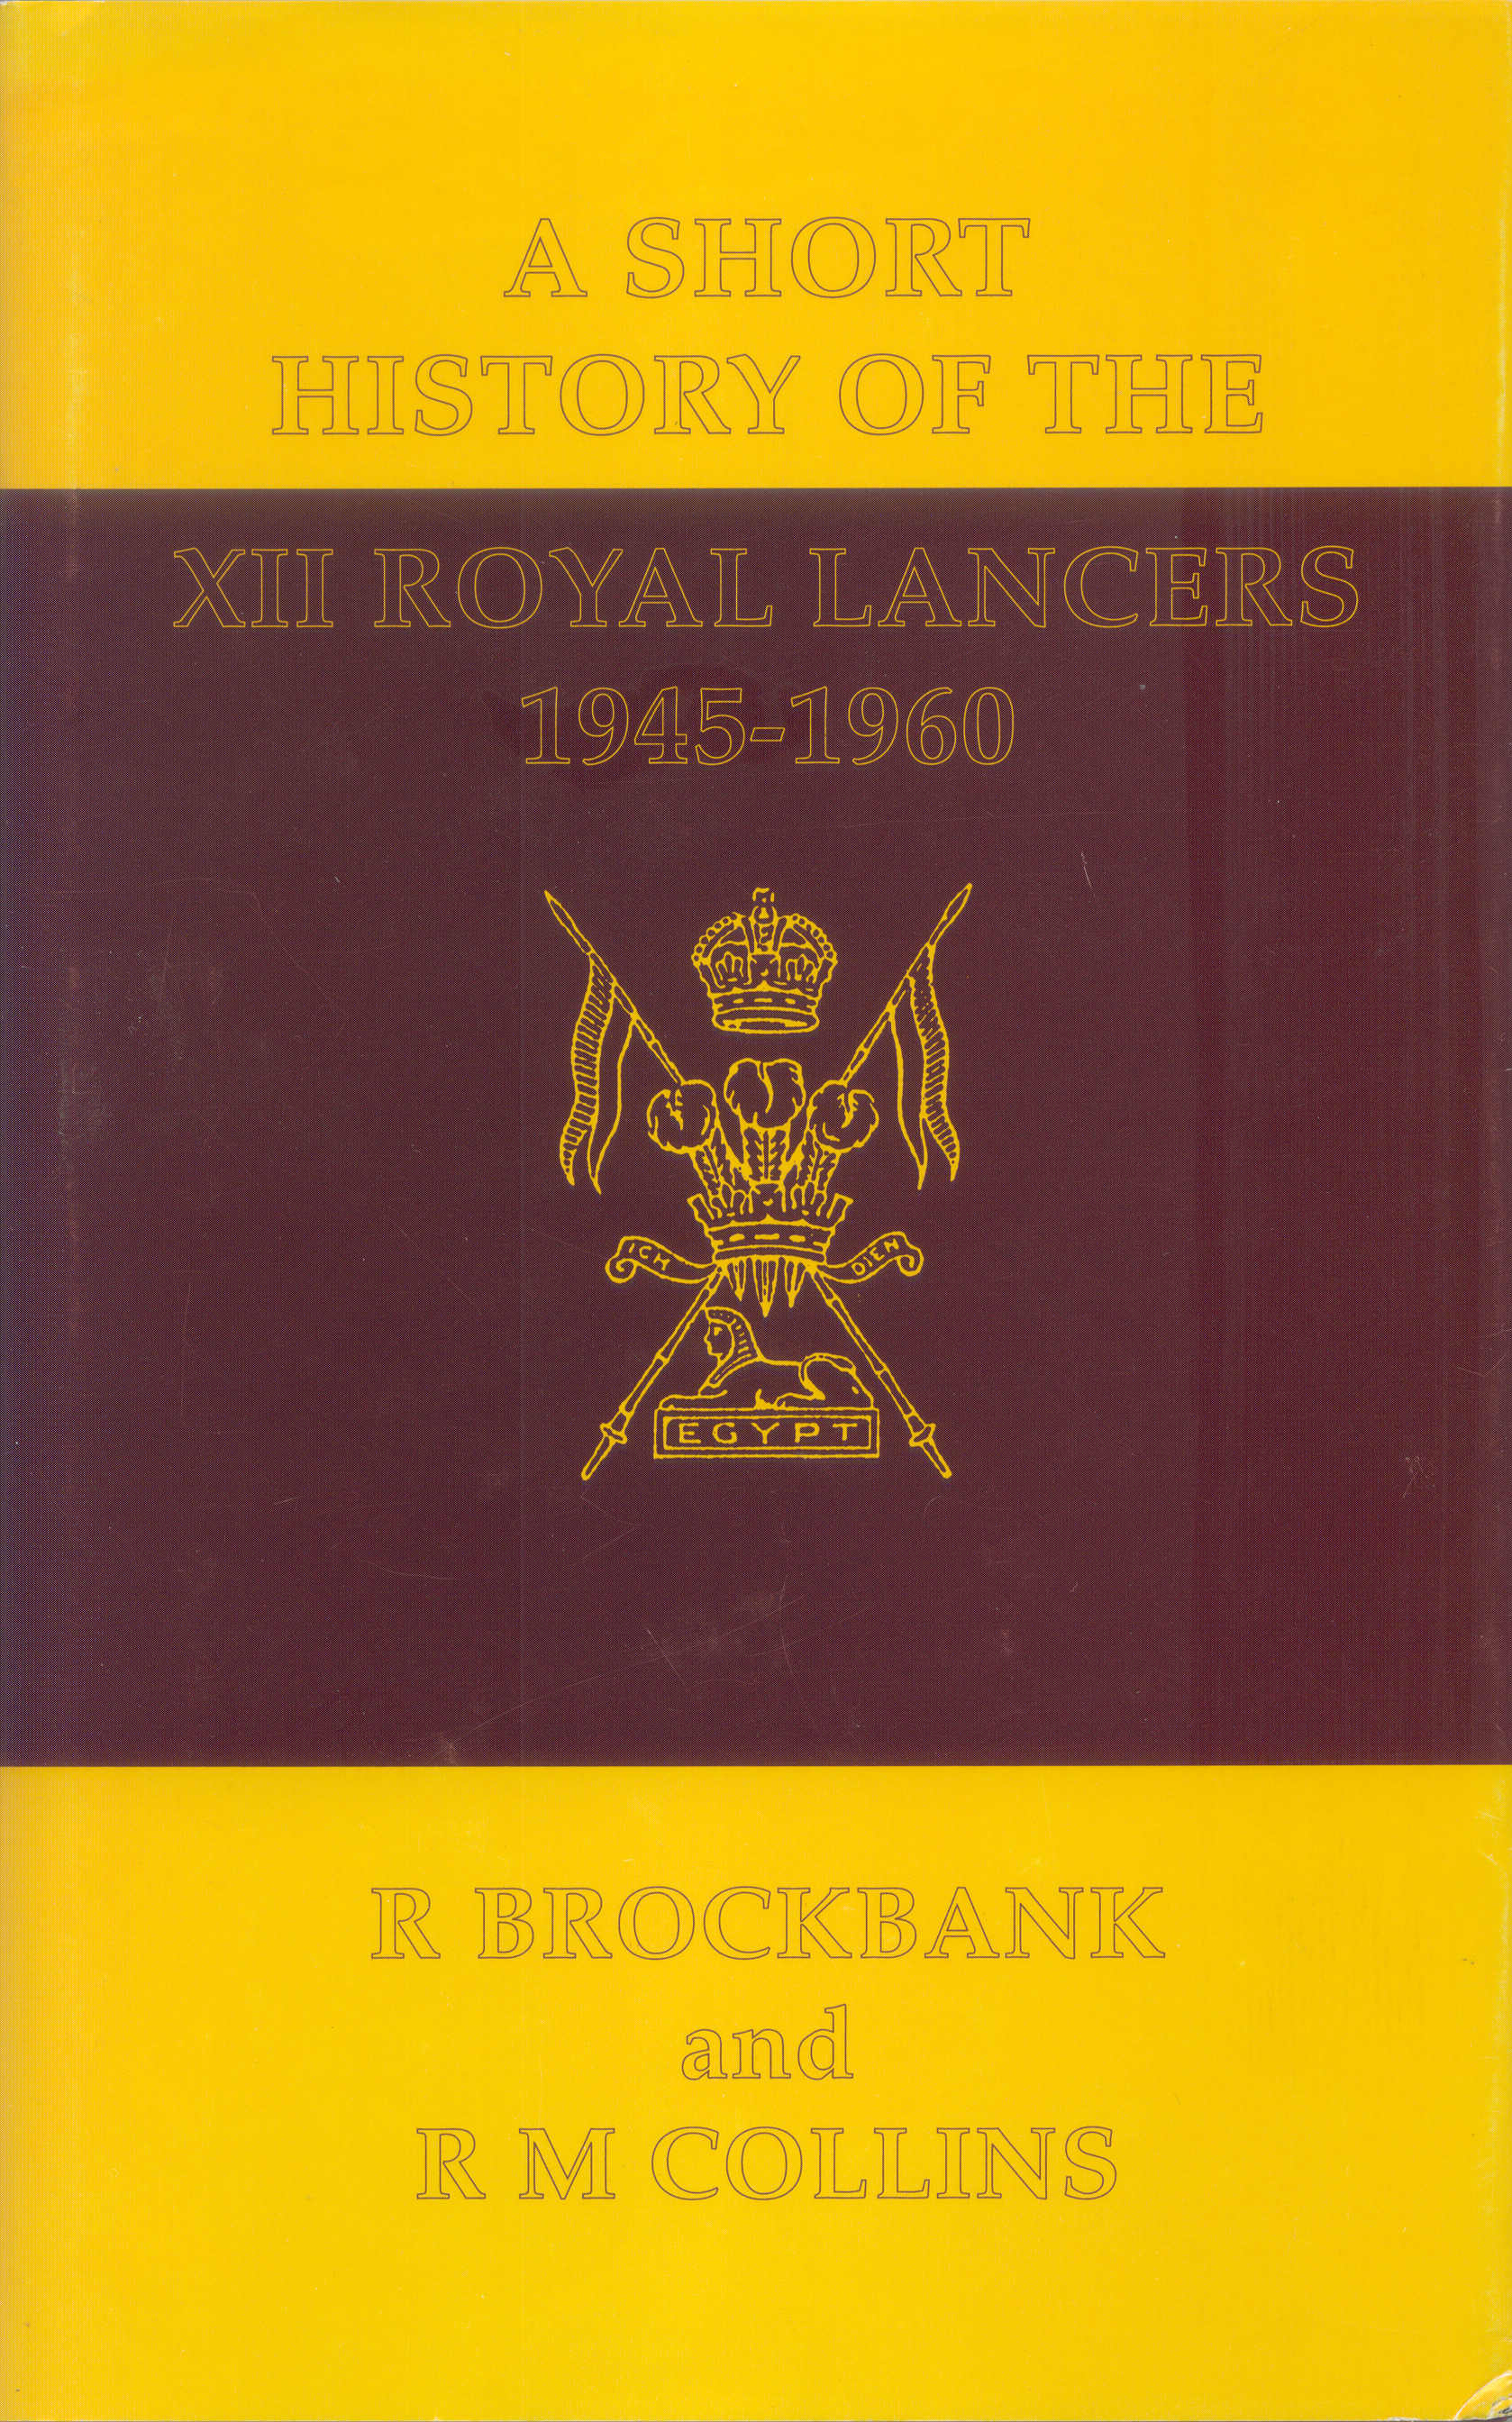 A Short History of The XII Royal Lancers 1945-1960